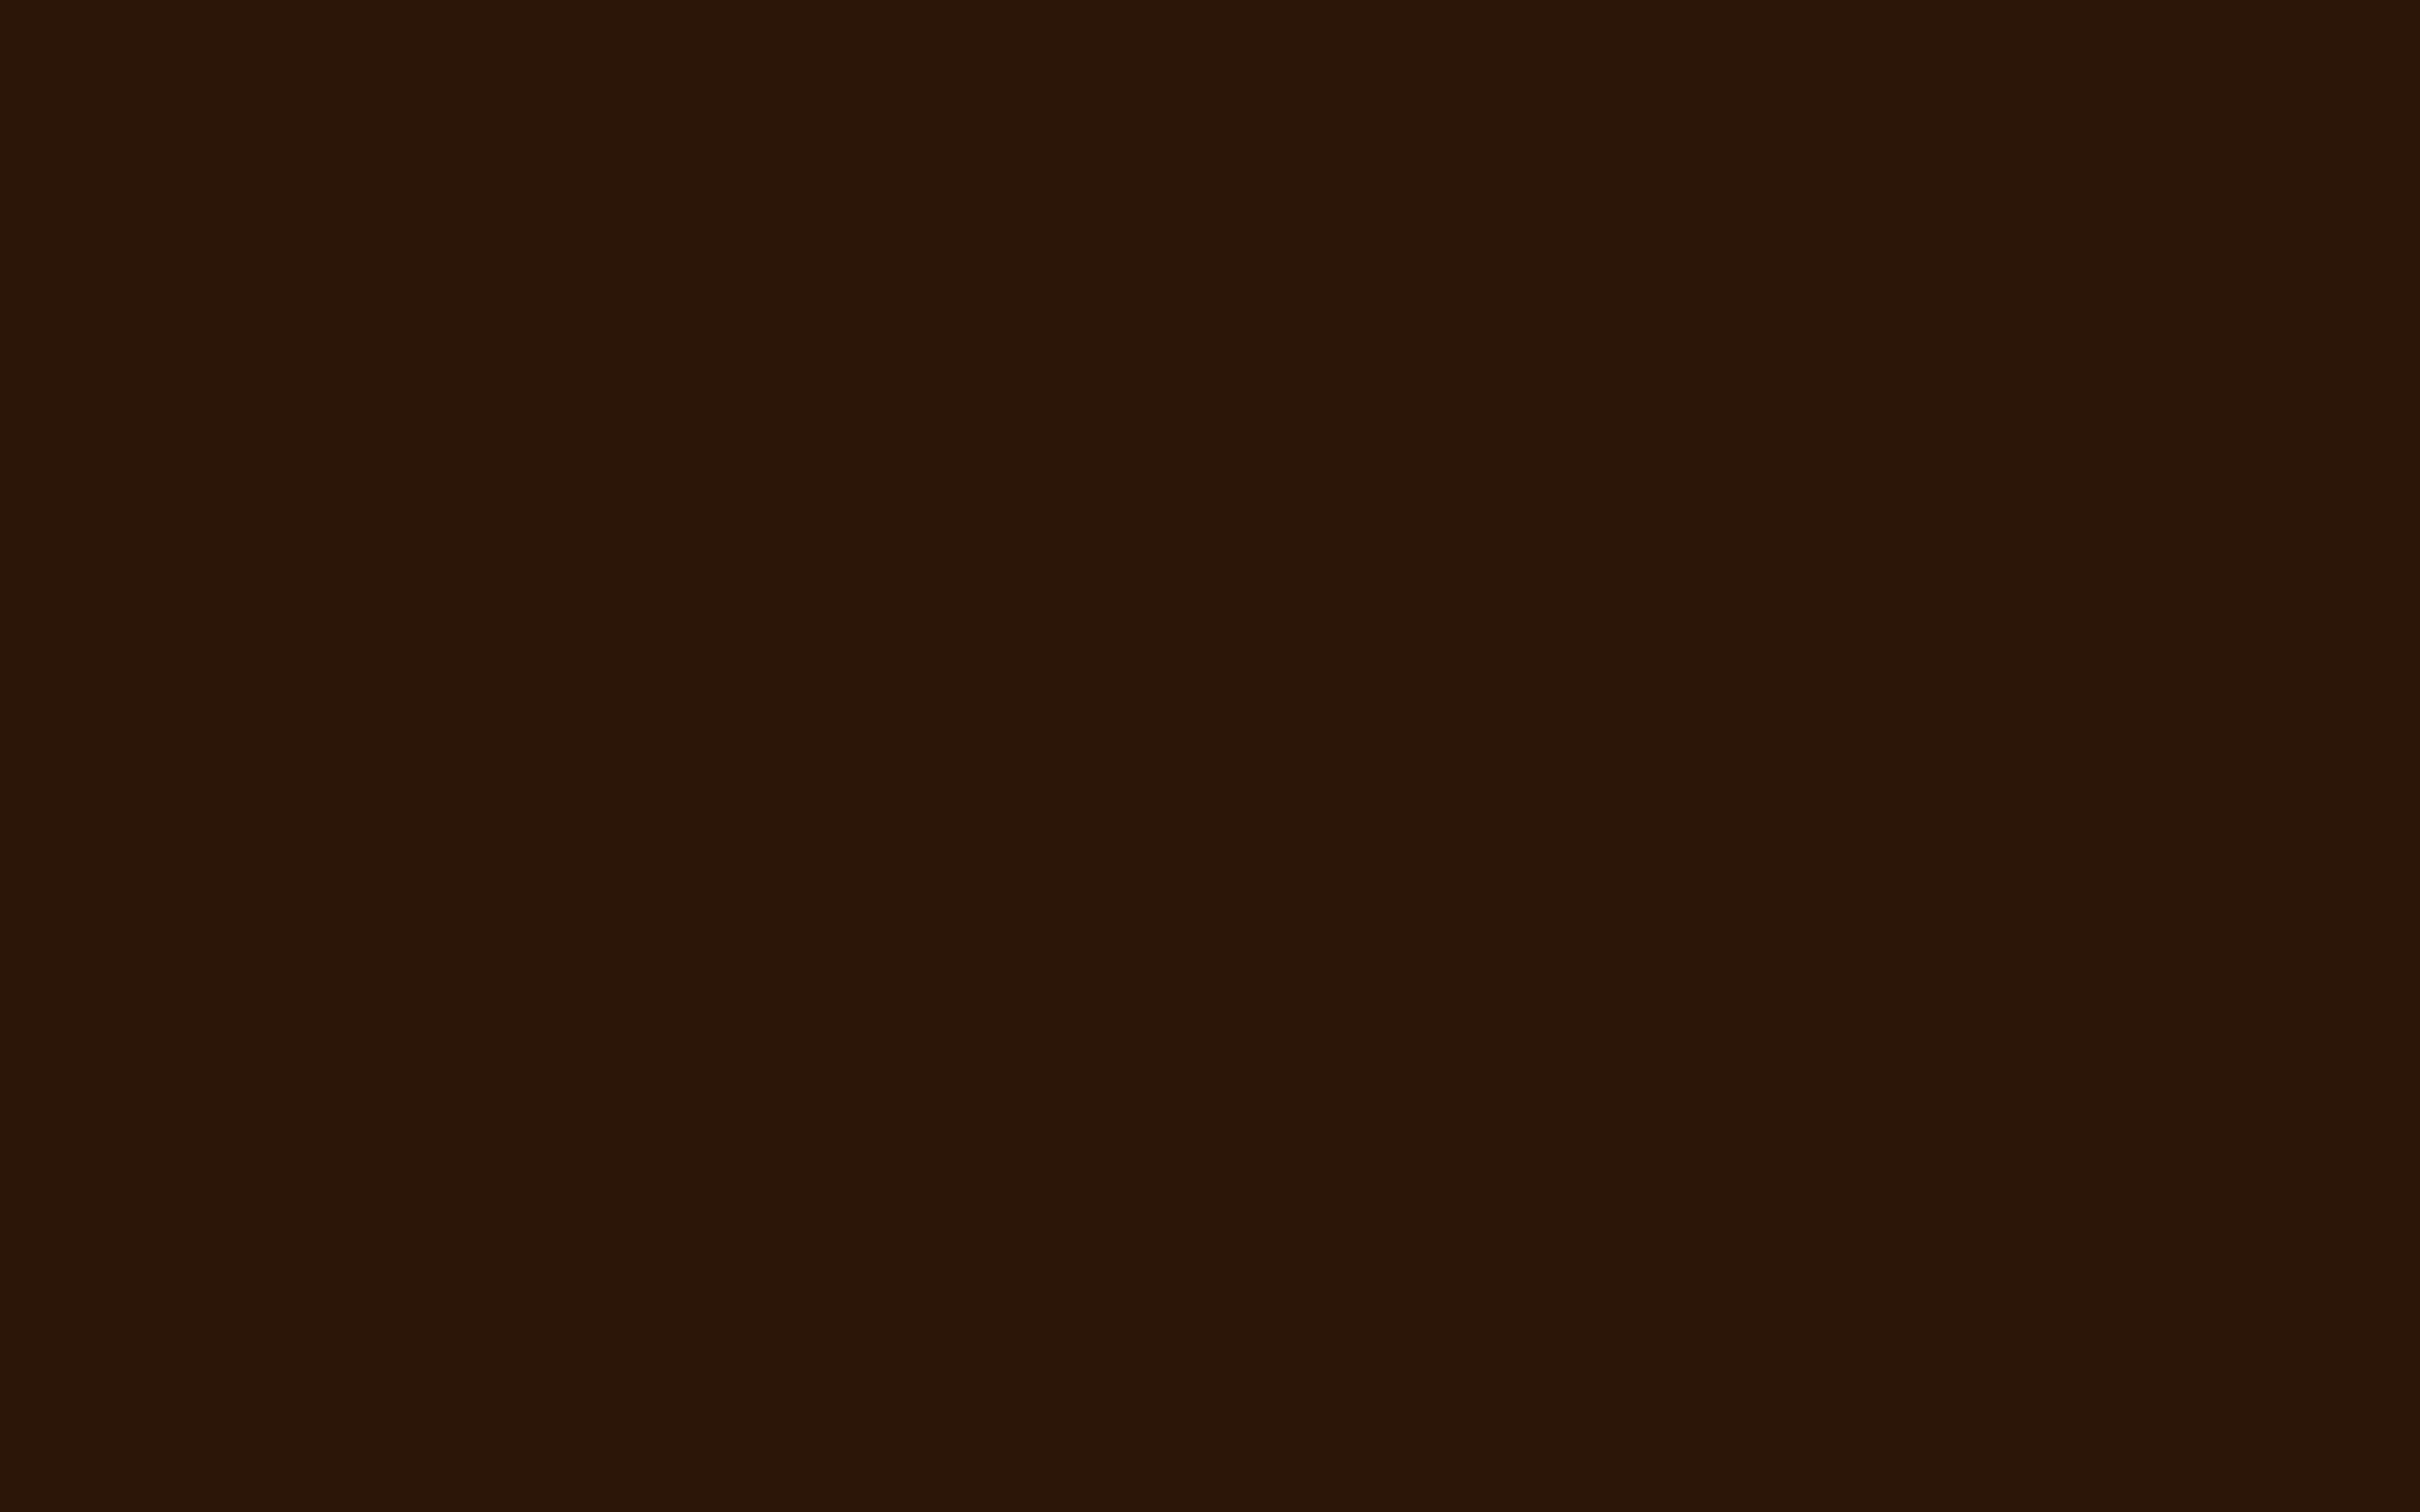 2560x1600 Zinnwaldite Brown Solid Color Background